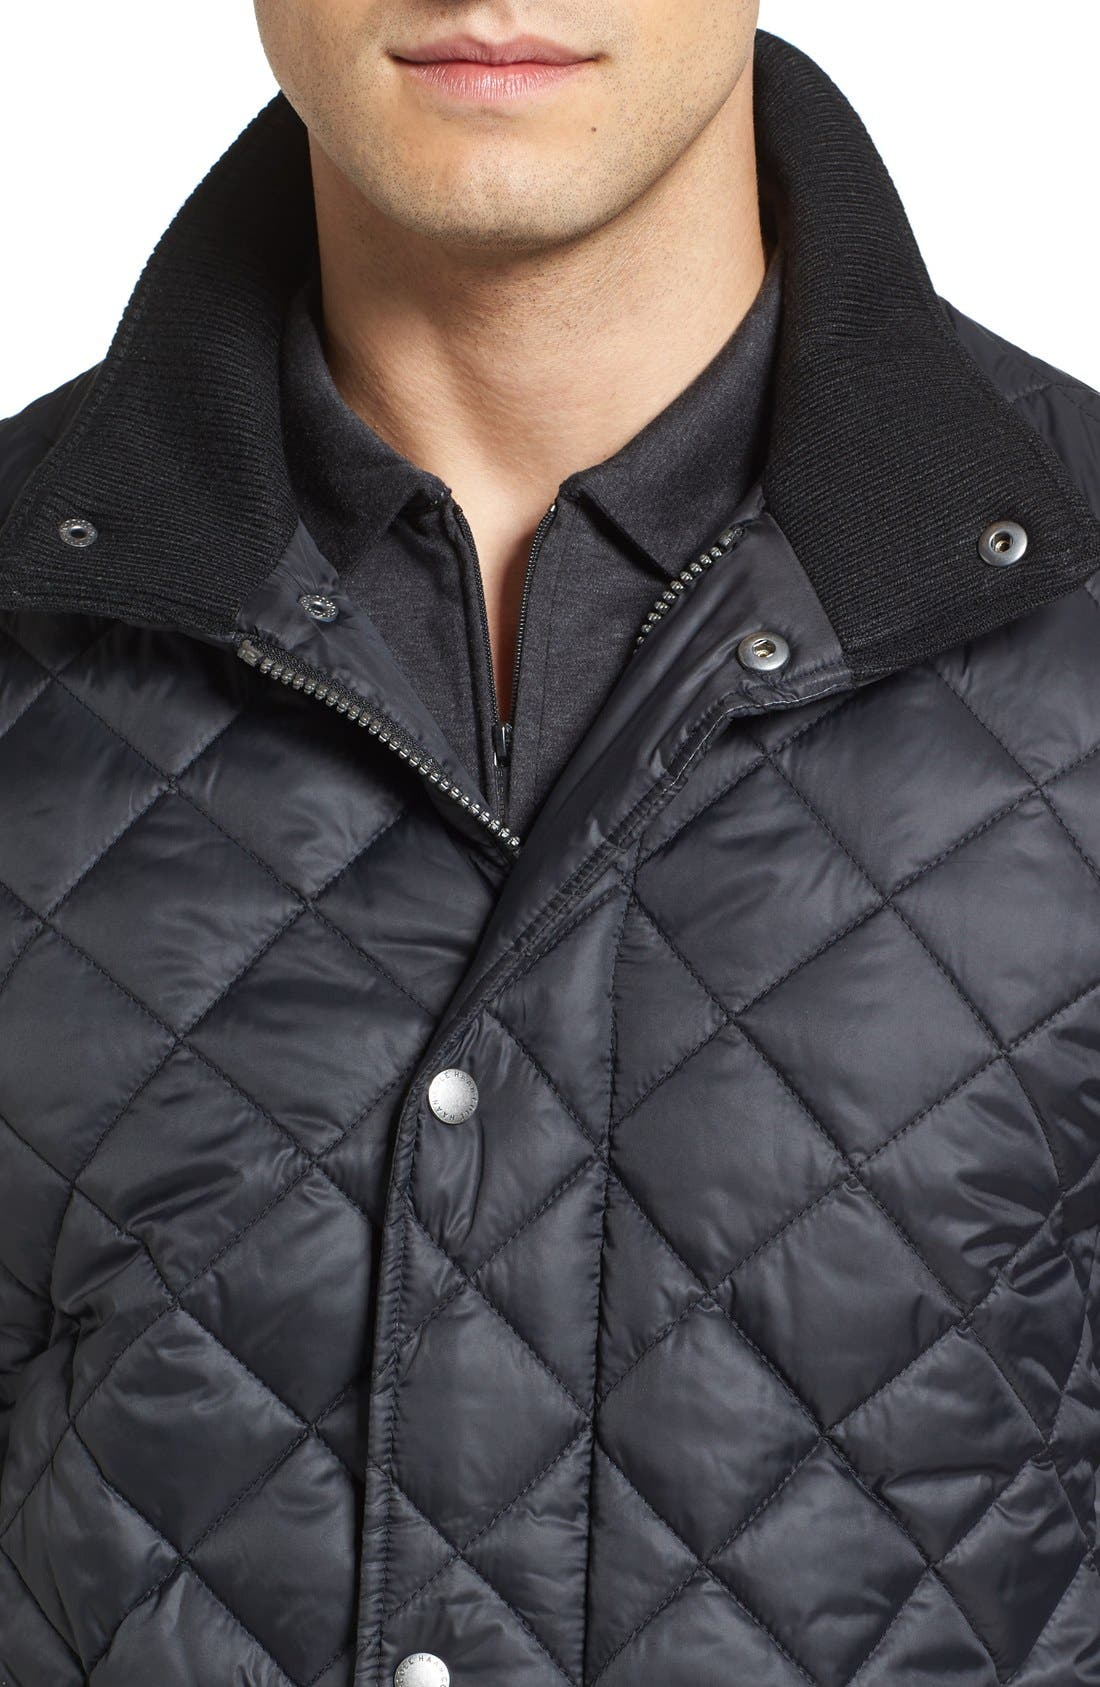 Diamond Quilted Jacket,                             Alternate thumbnail 14, color,                             Navy